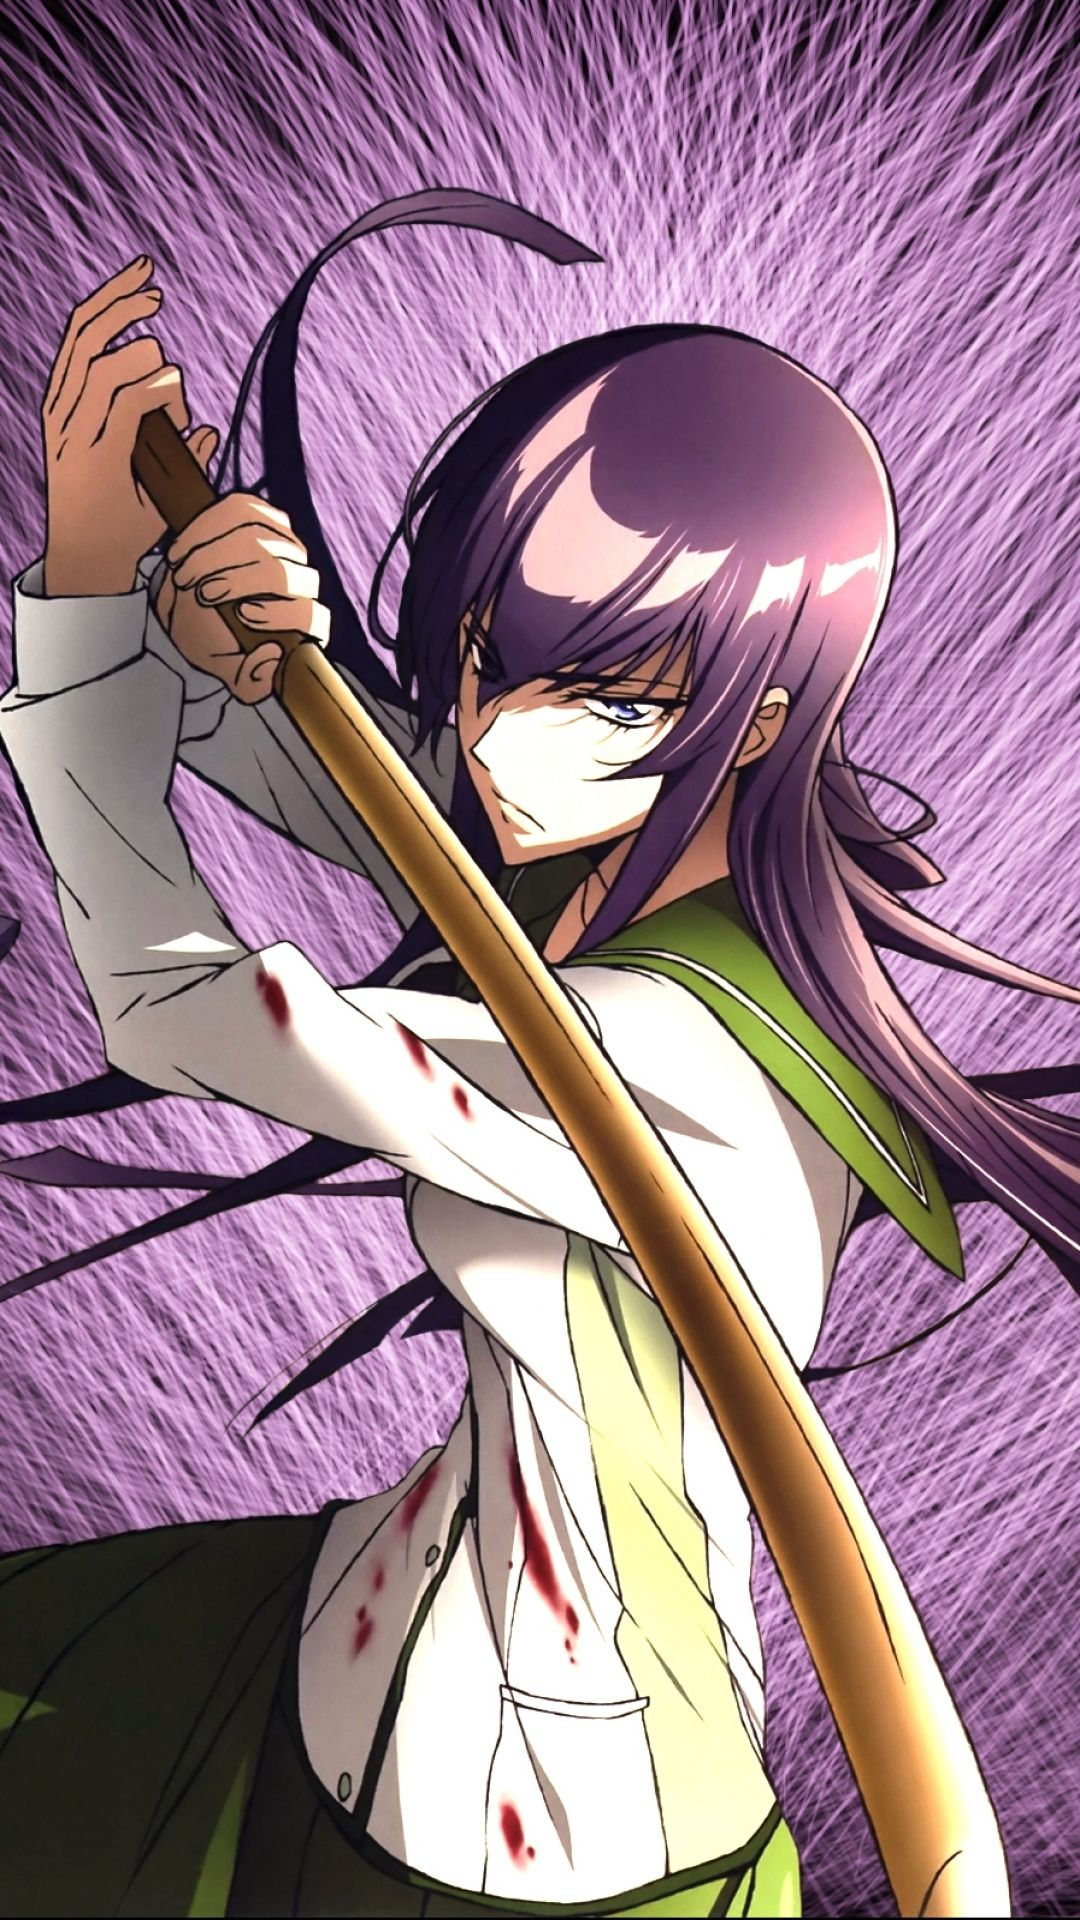 1080x1920 Anime/Highschool Of The Dead (1080x1920) Wallpaper ID: 329412 ...